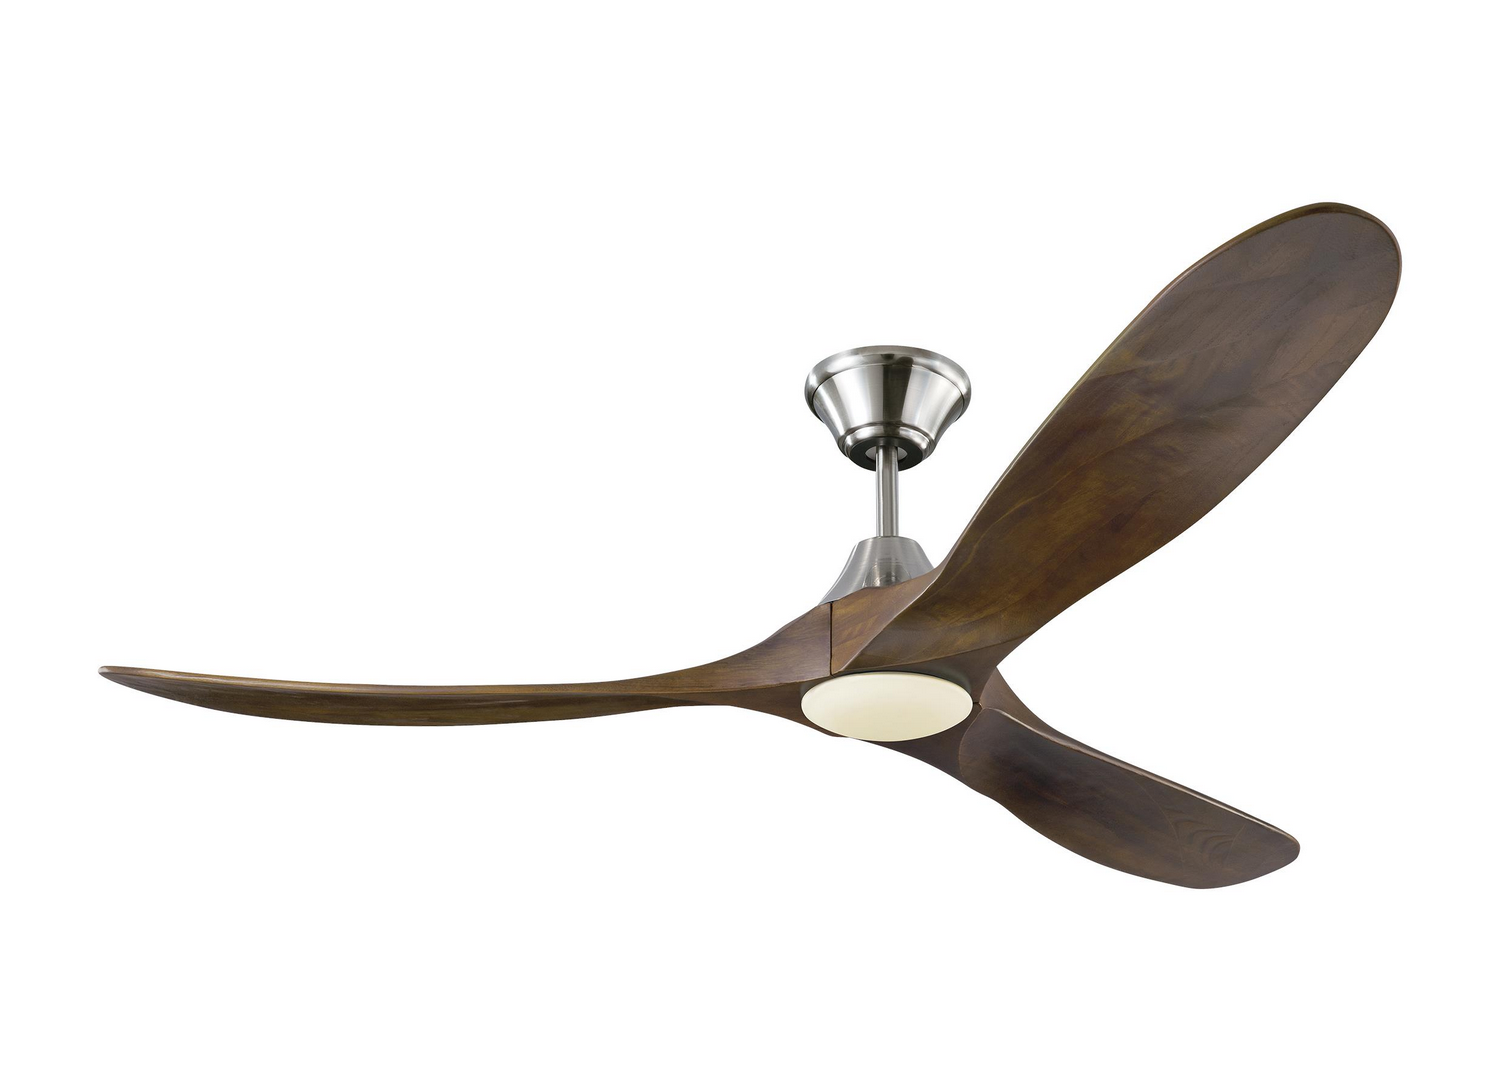 60 inchCeiling Fan from the Maverick LED collection by Monte Carlo 3MAVR60BSD